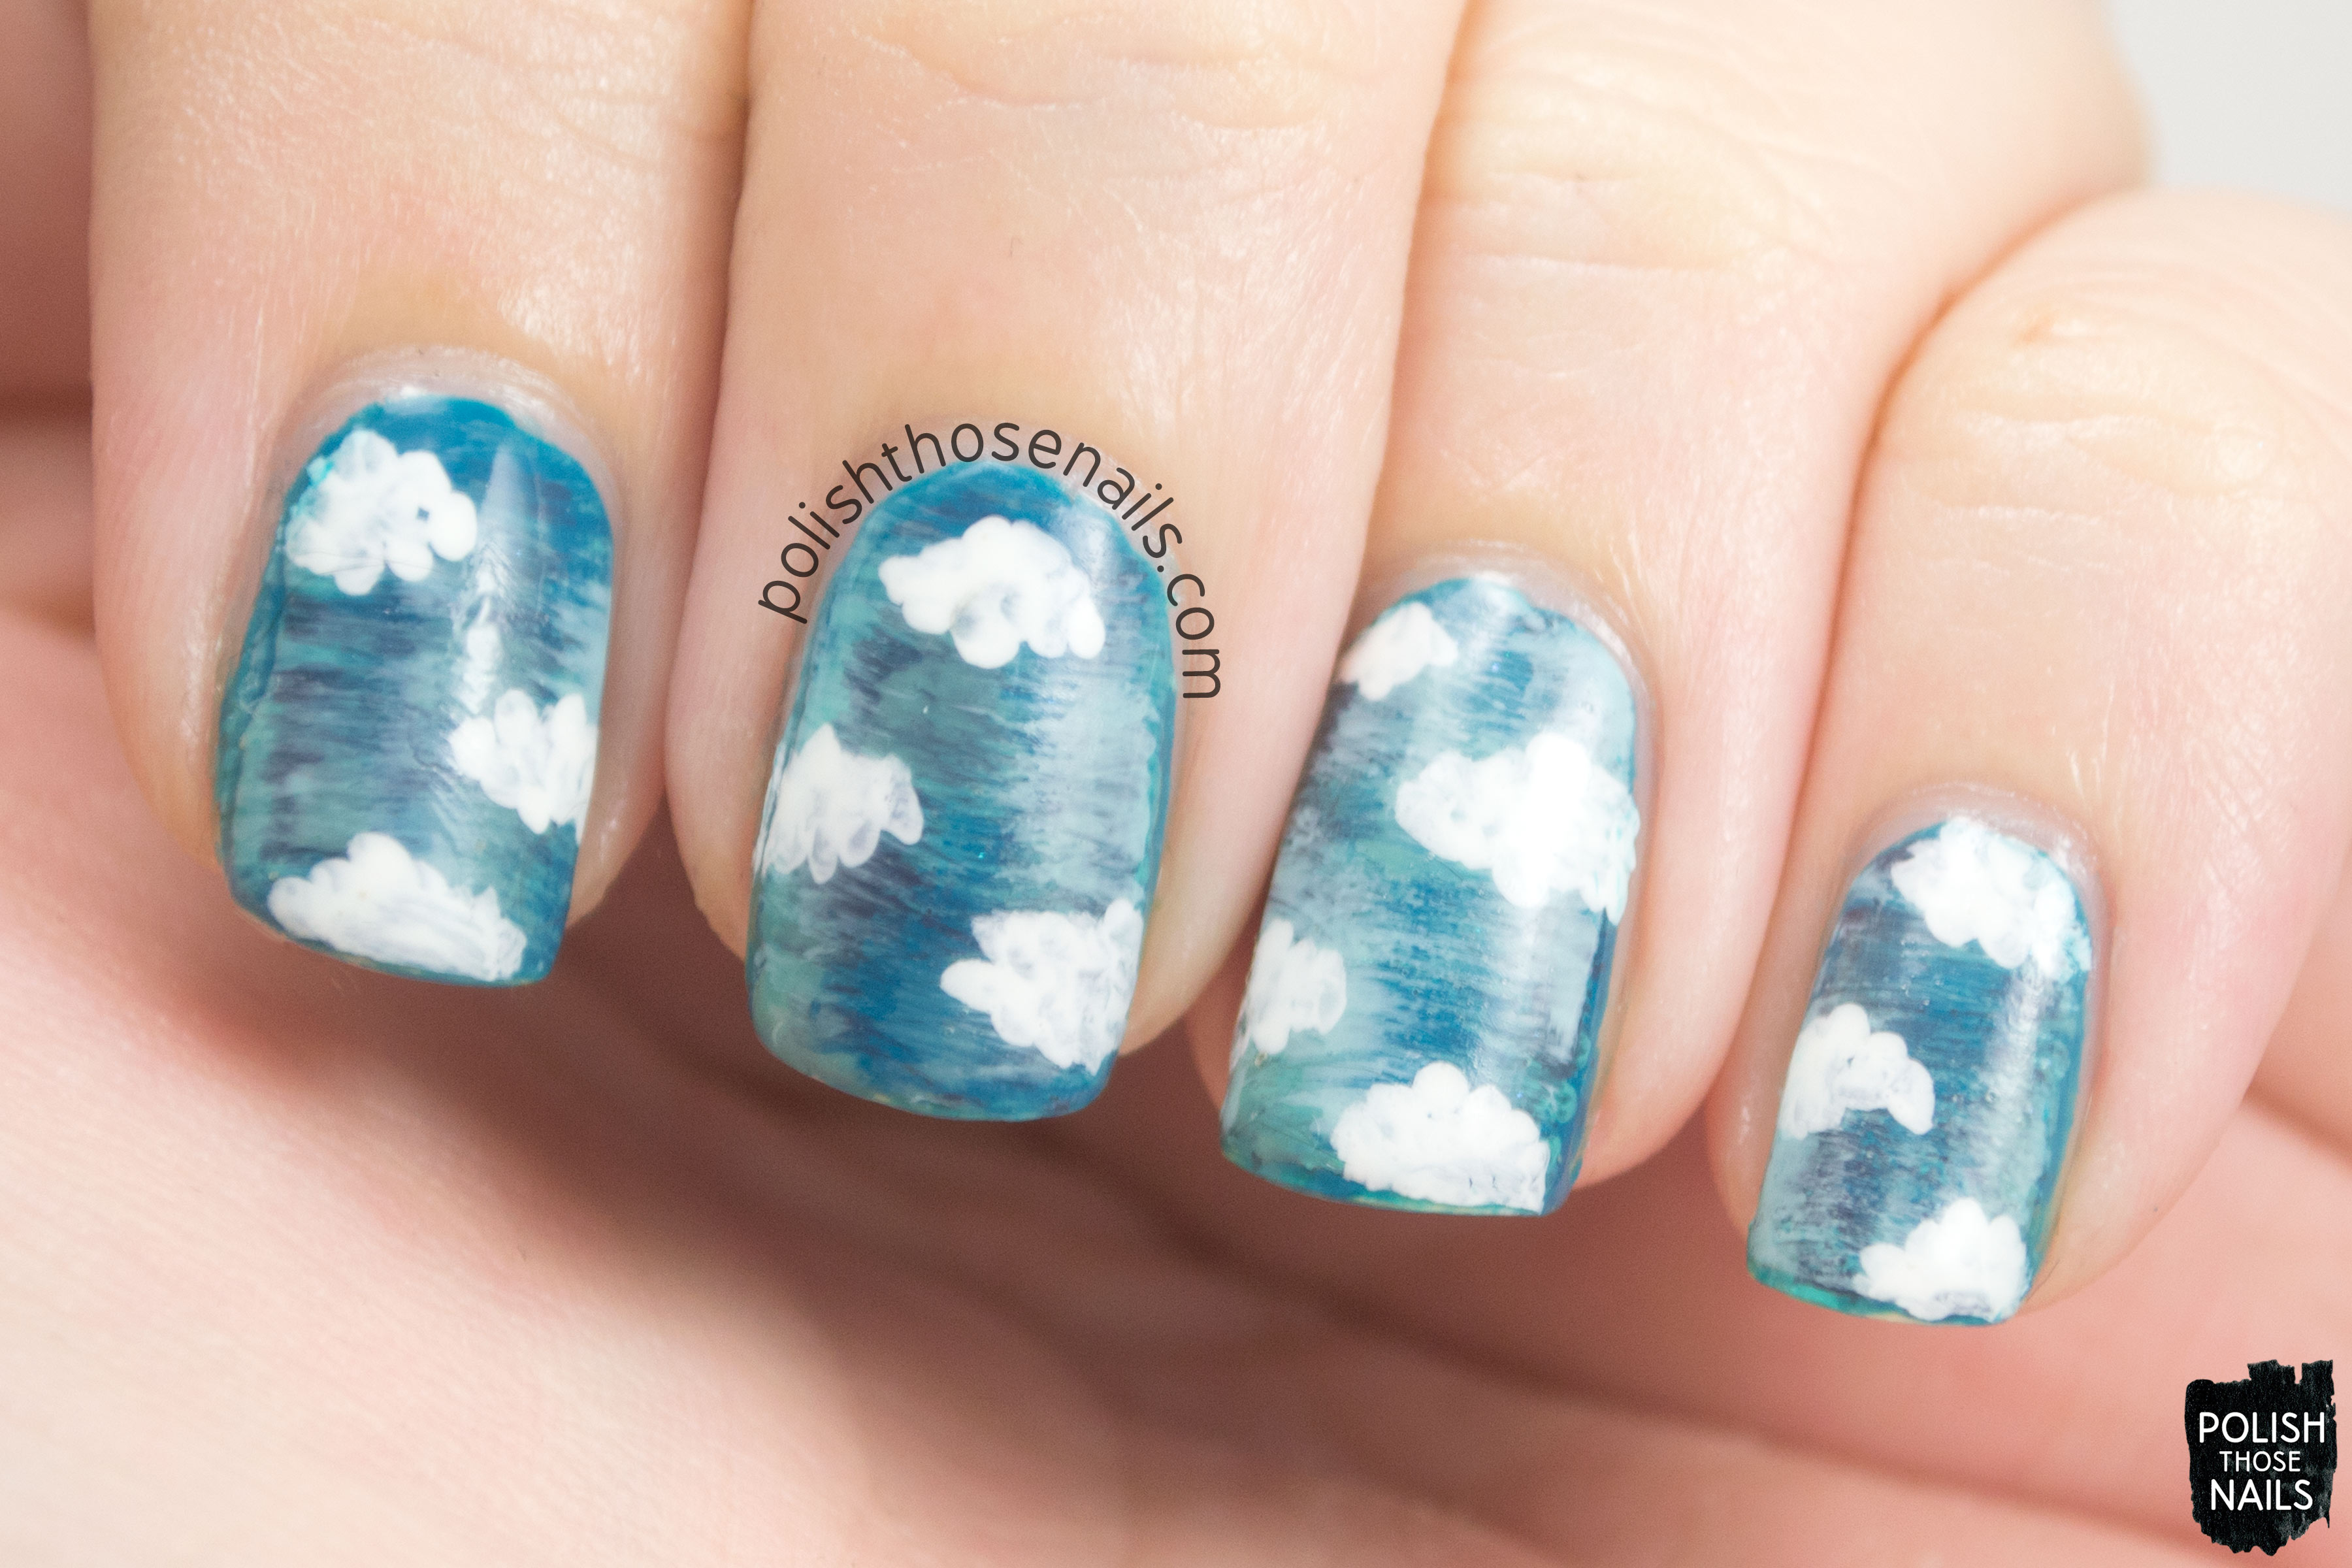 Oh Mon Dieu 3: Weather • Polish Those Nails